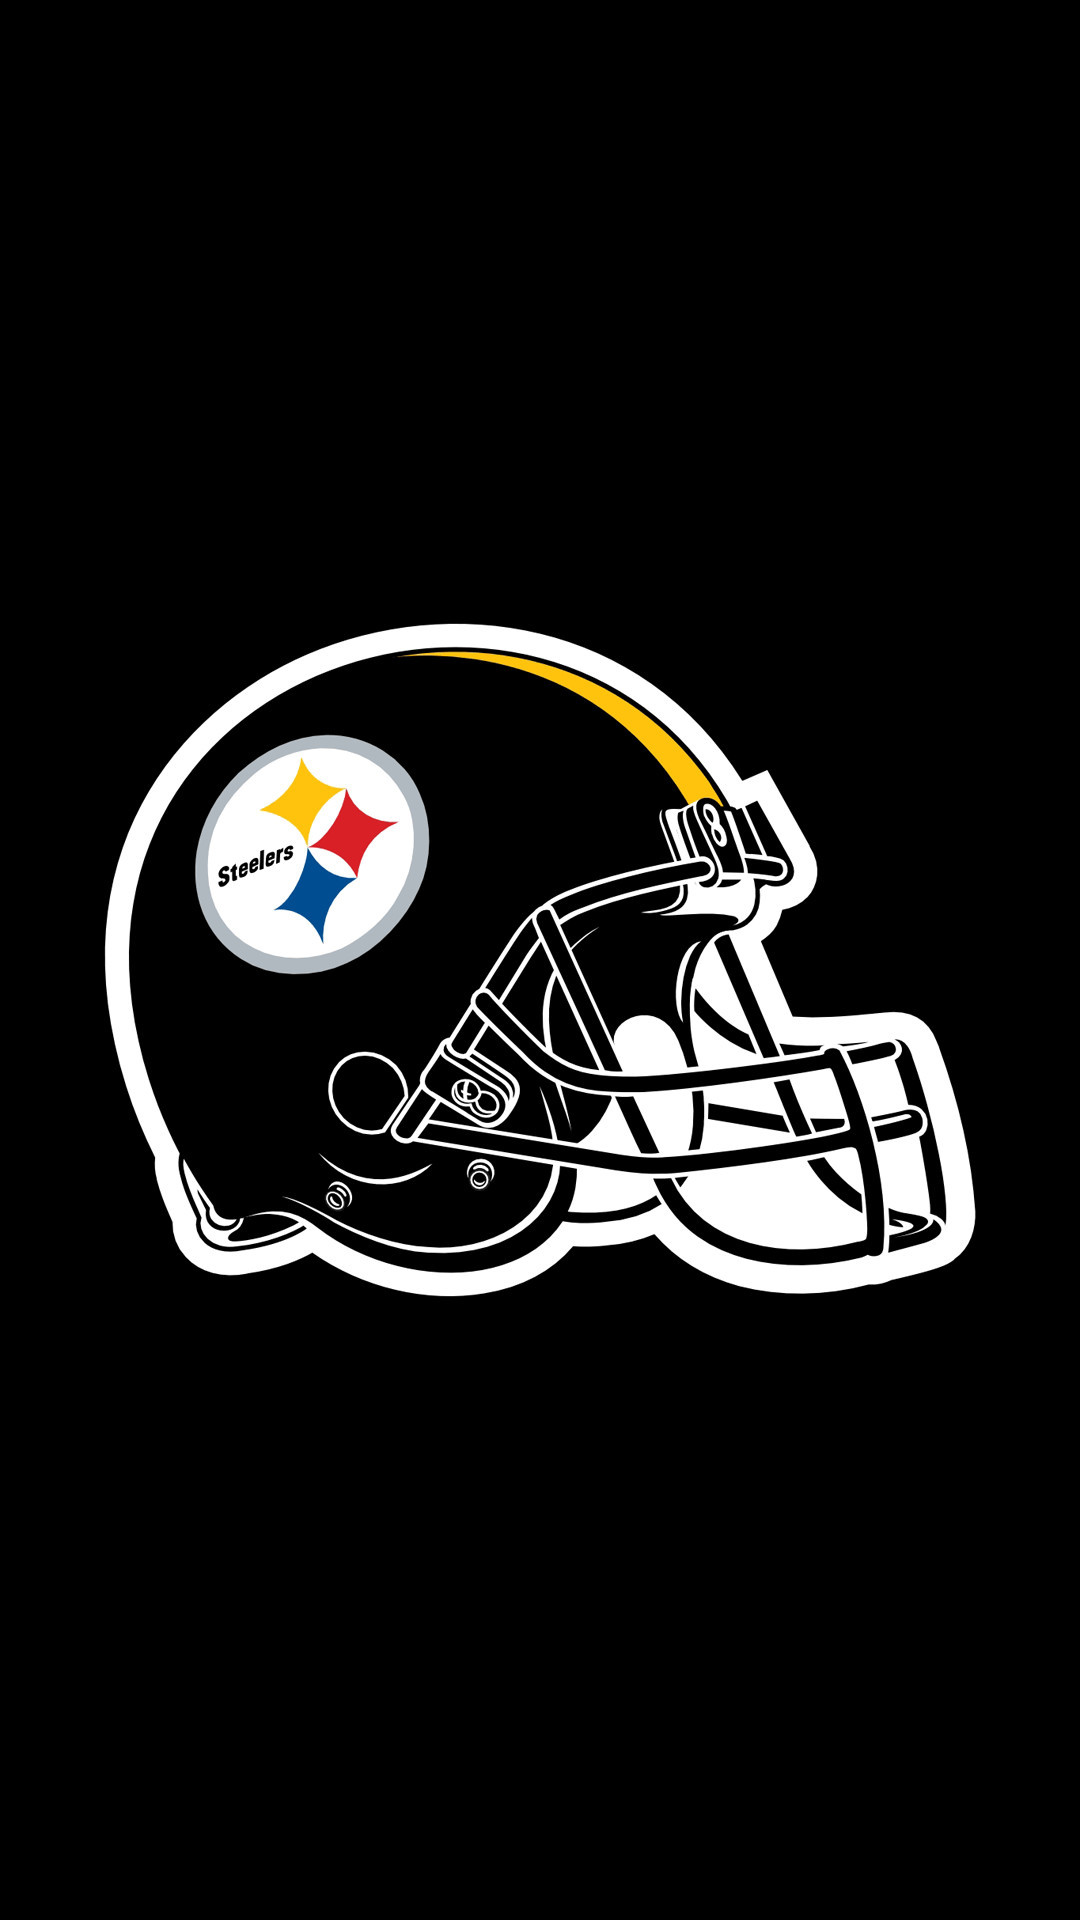 3031x2020 Wallpaper Hd Of Sport Pittsburgh Steelers Sharovarka Pics Smartphone. Download